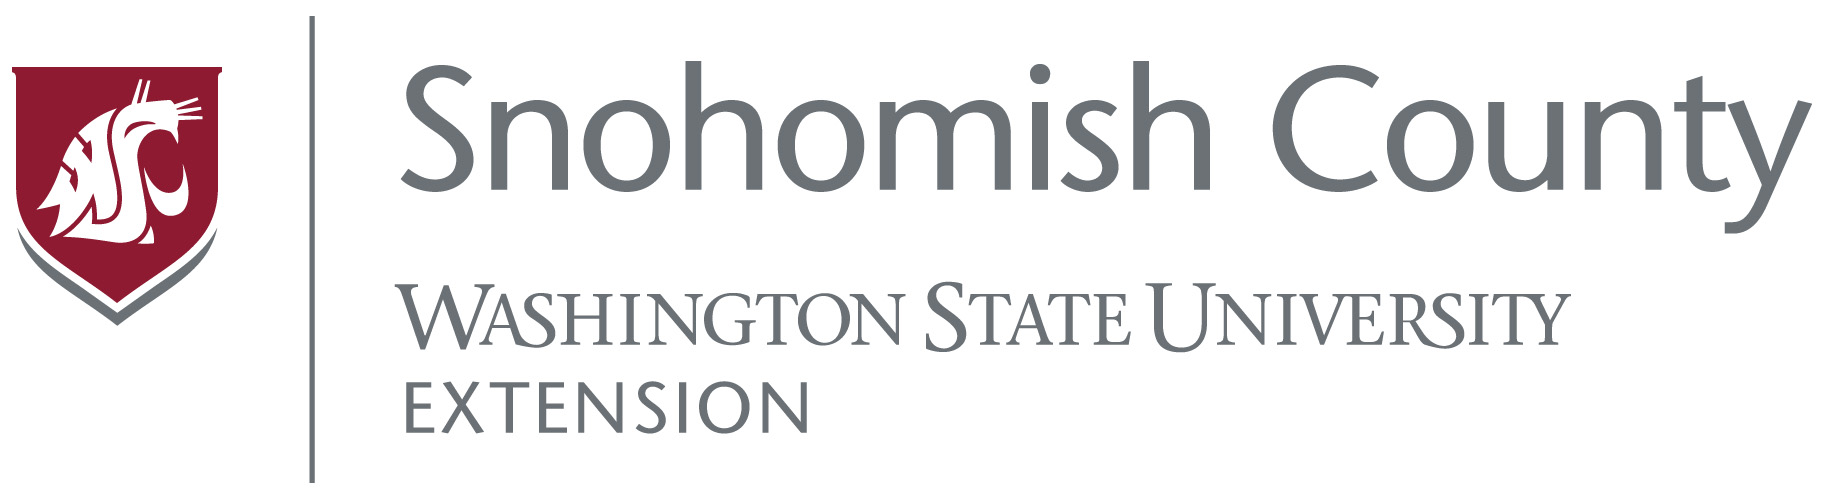 Snohomish County Extension logo